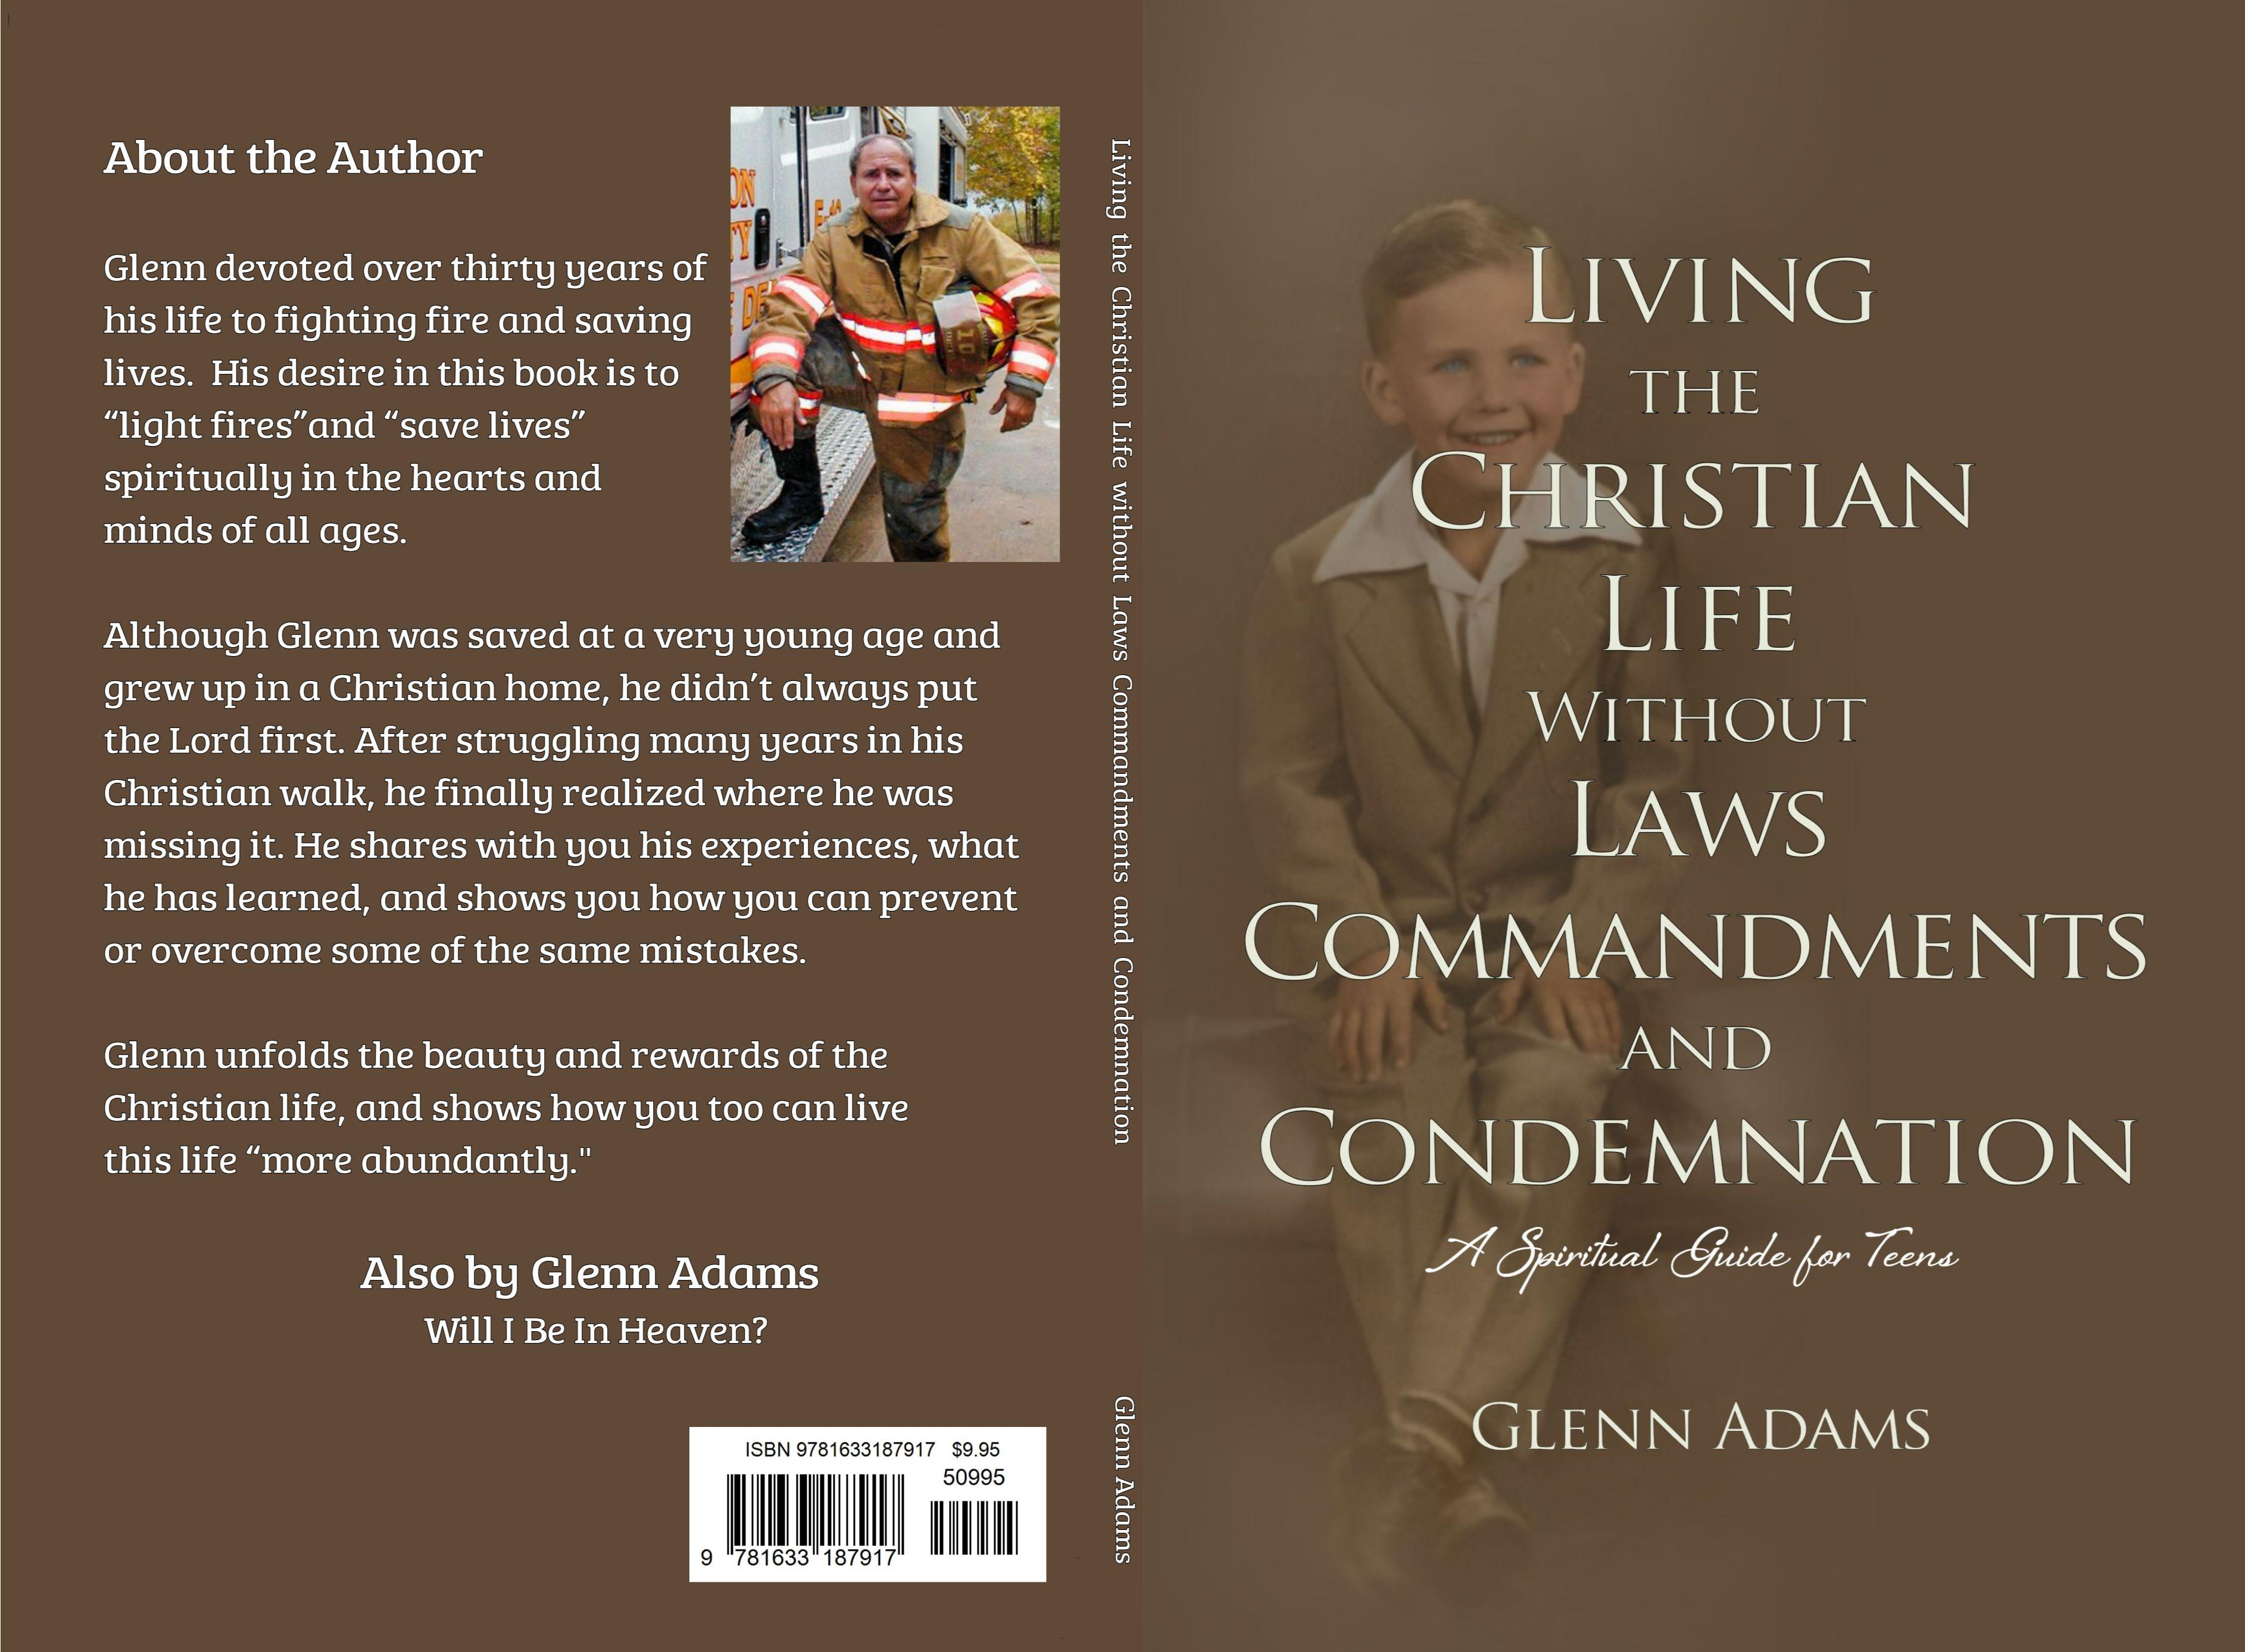 Living the Christian Life Without Laws, Commandments and Condemnation cover image